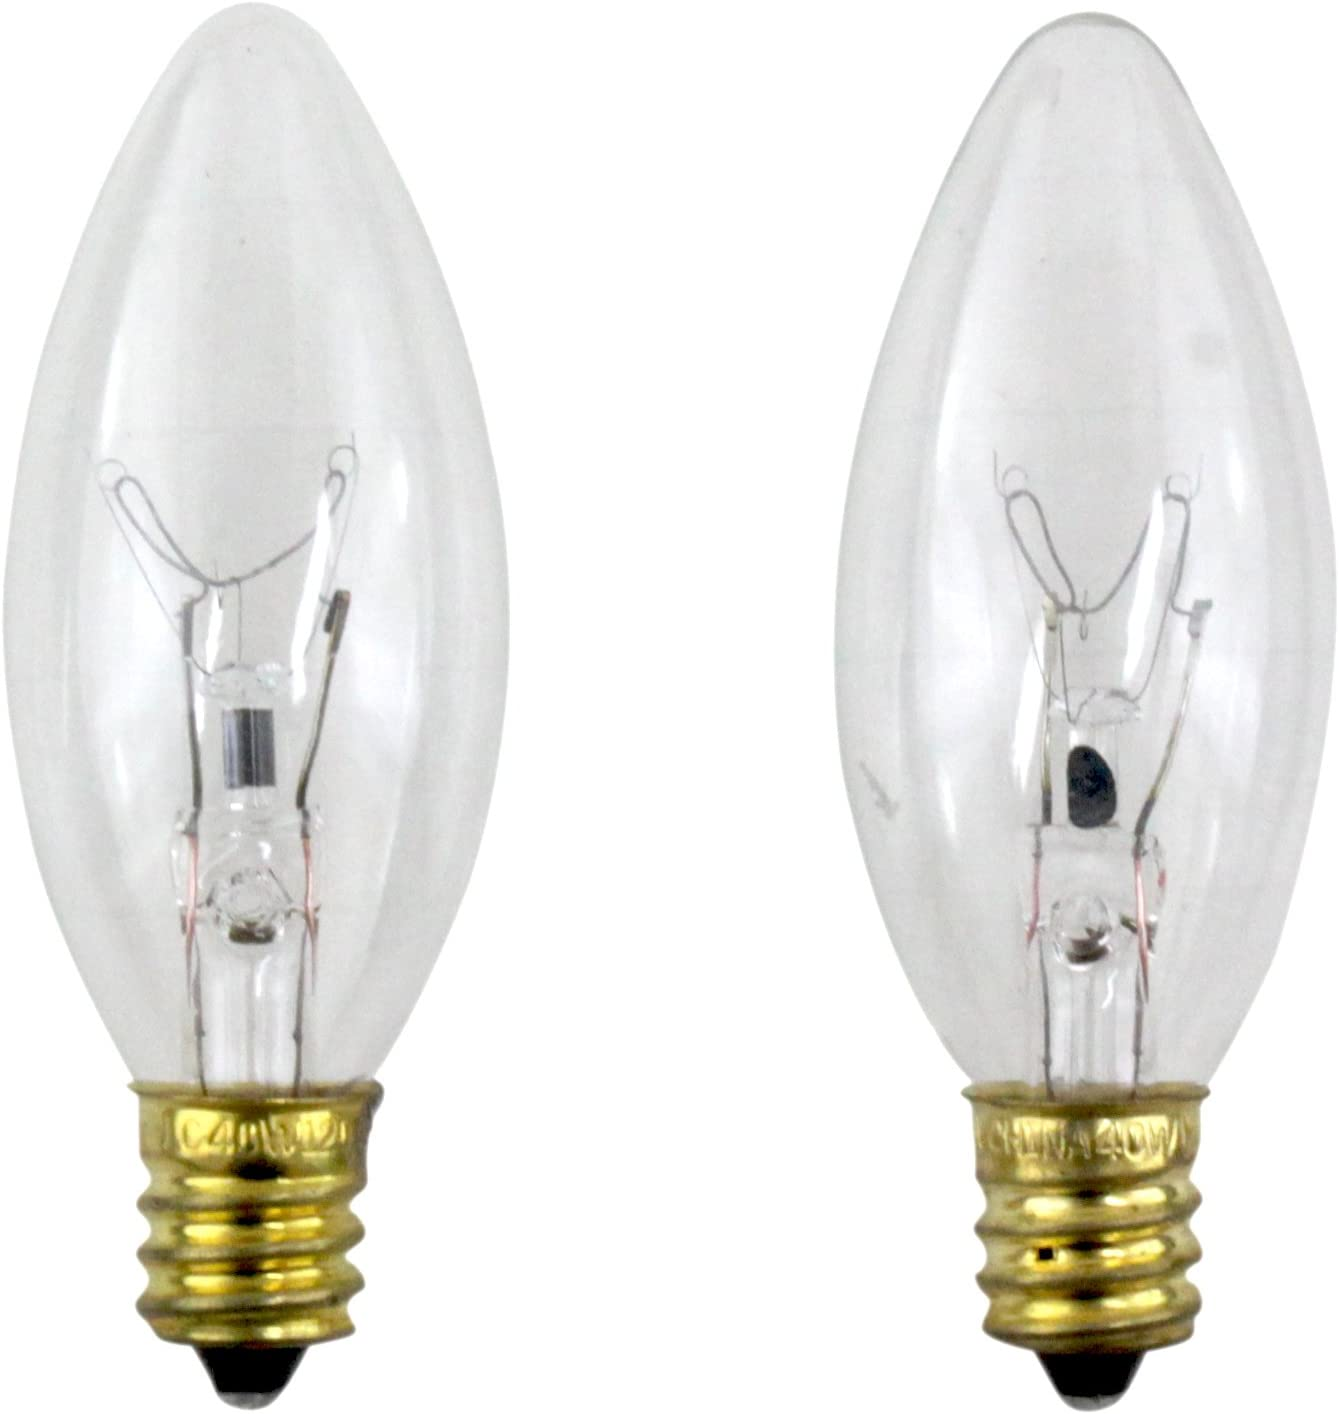 Philips 40 Watt Clear Ceiling Fan Light Bulbs Candelabra Base B8 2 Pack Incandescent Bulbs Amazon Canada